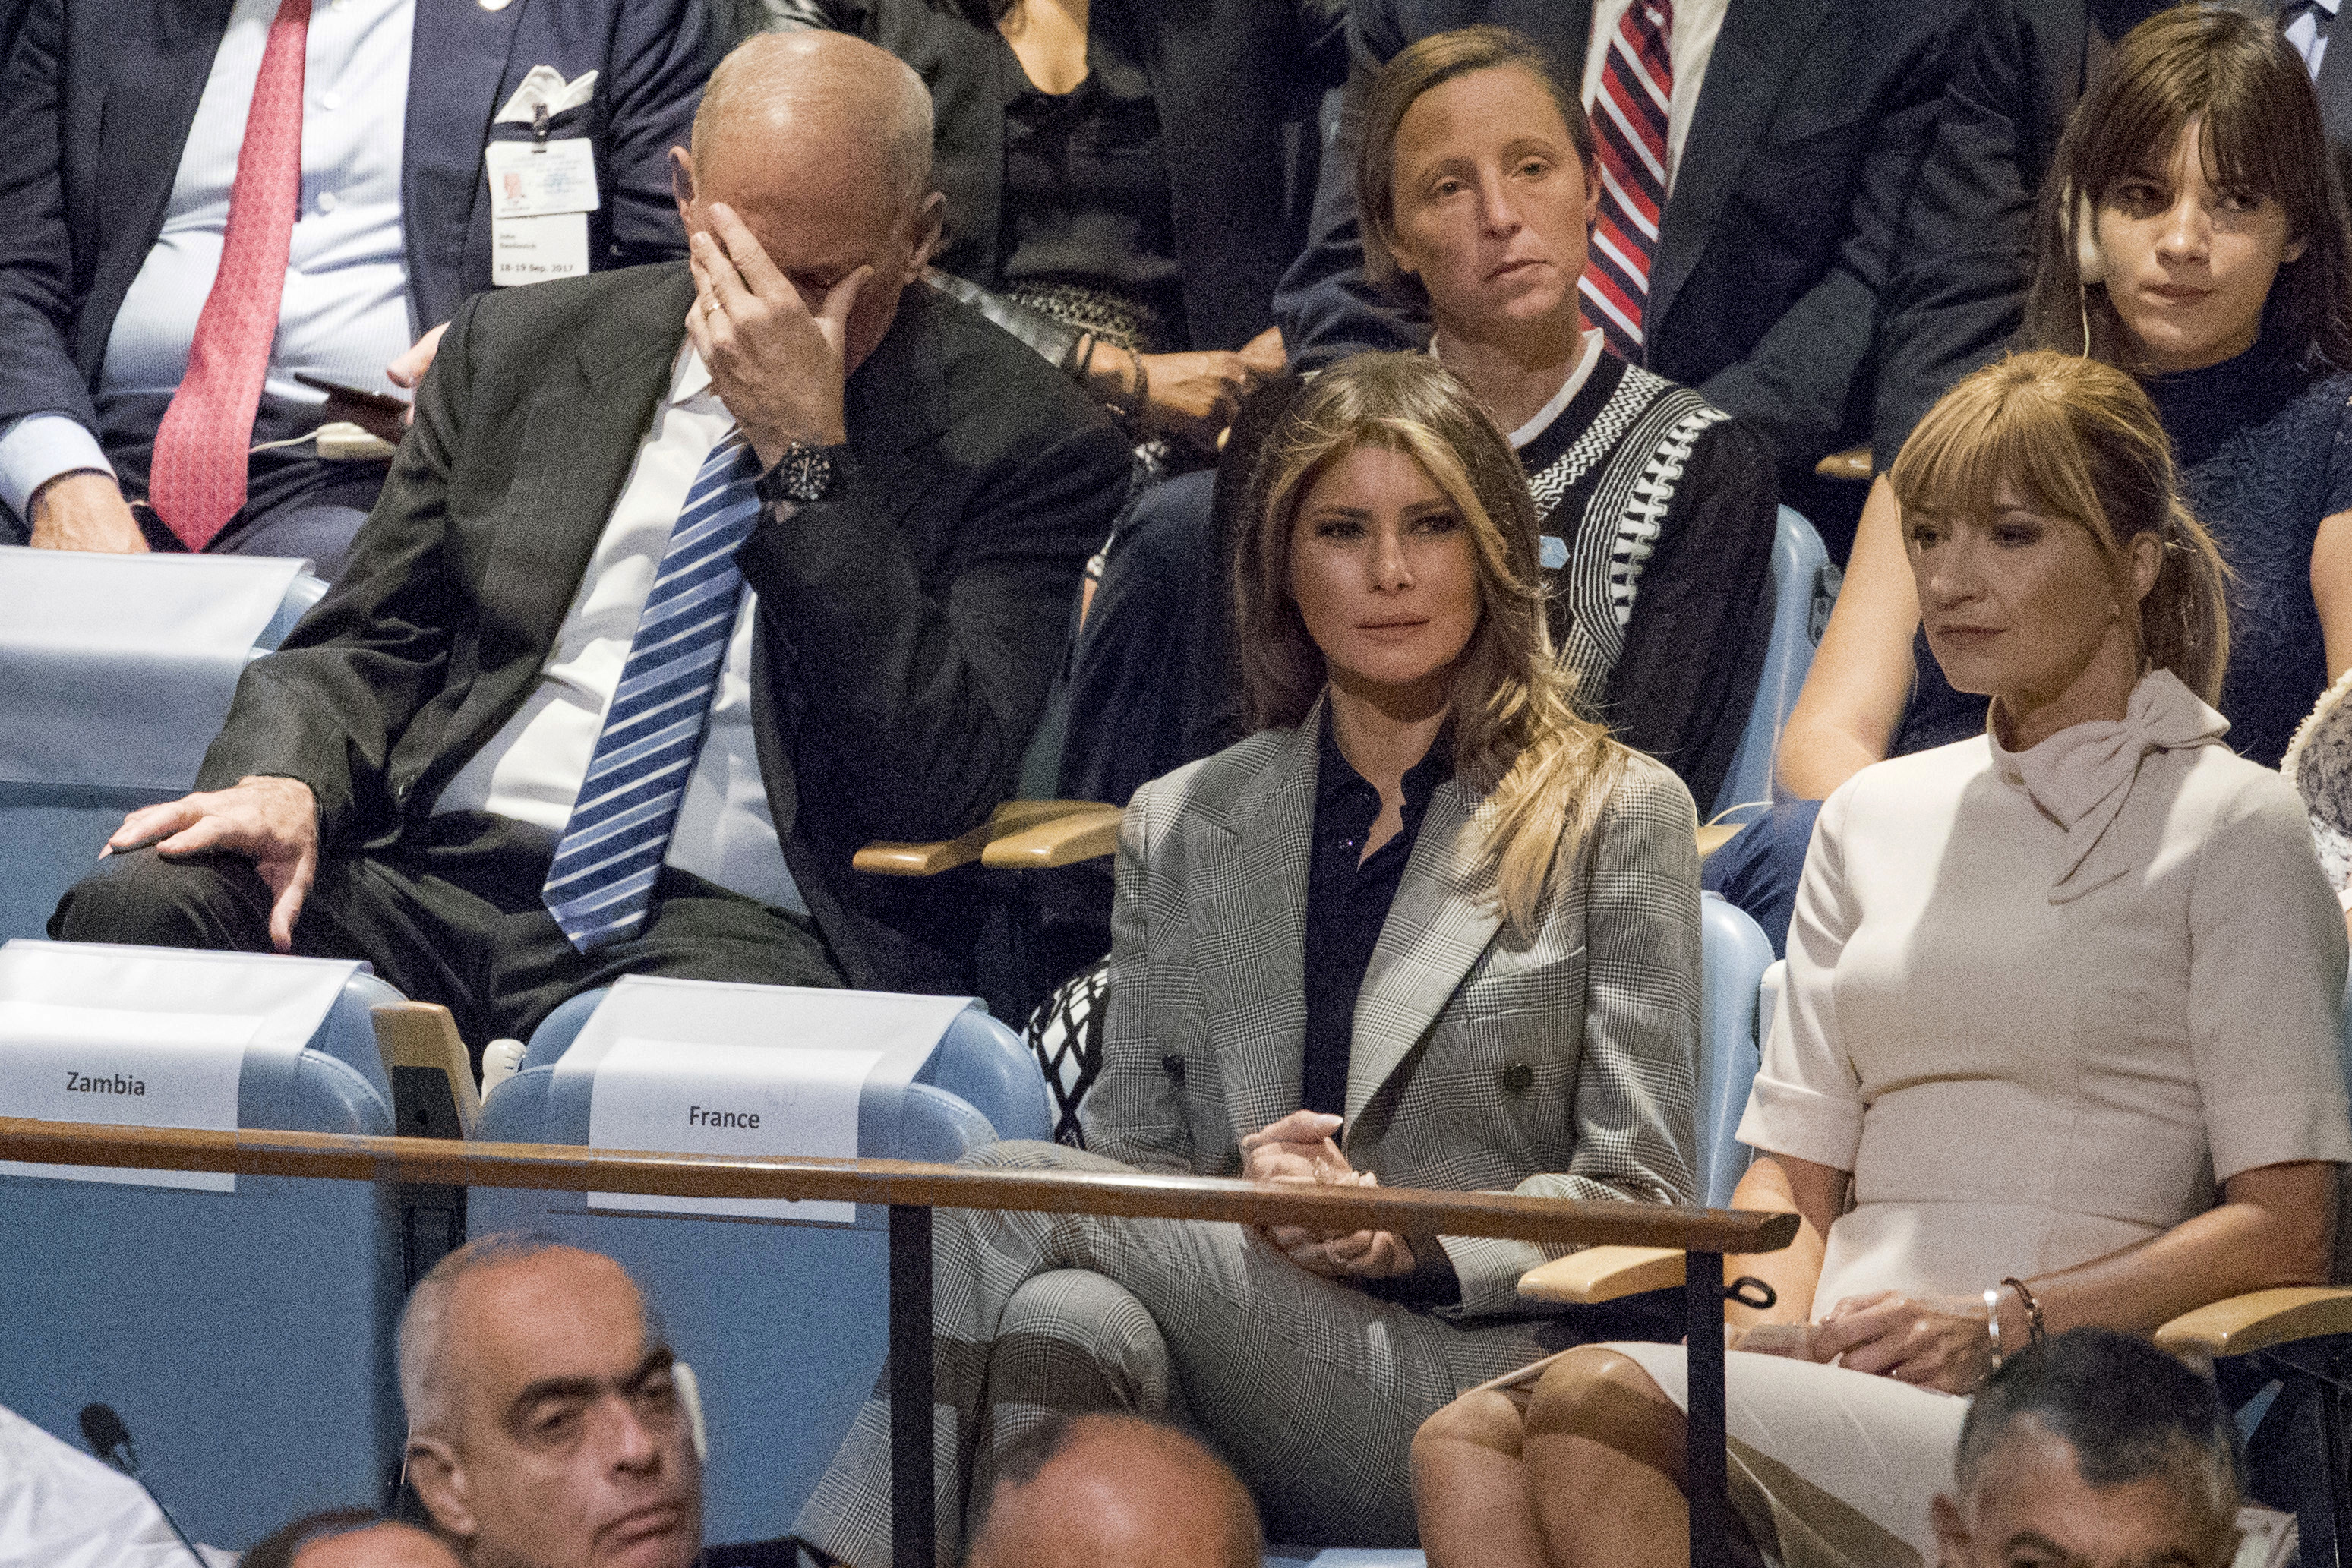 White House Chief of Staff John Kelly during President Donald Trump's speech at the 72nd session of the United Nations General Assembly at U.N. headquarters, Sept. 19, 2017.